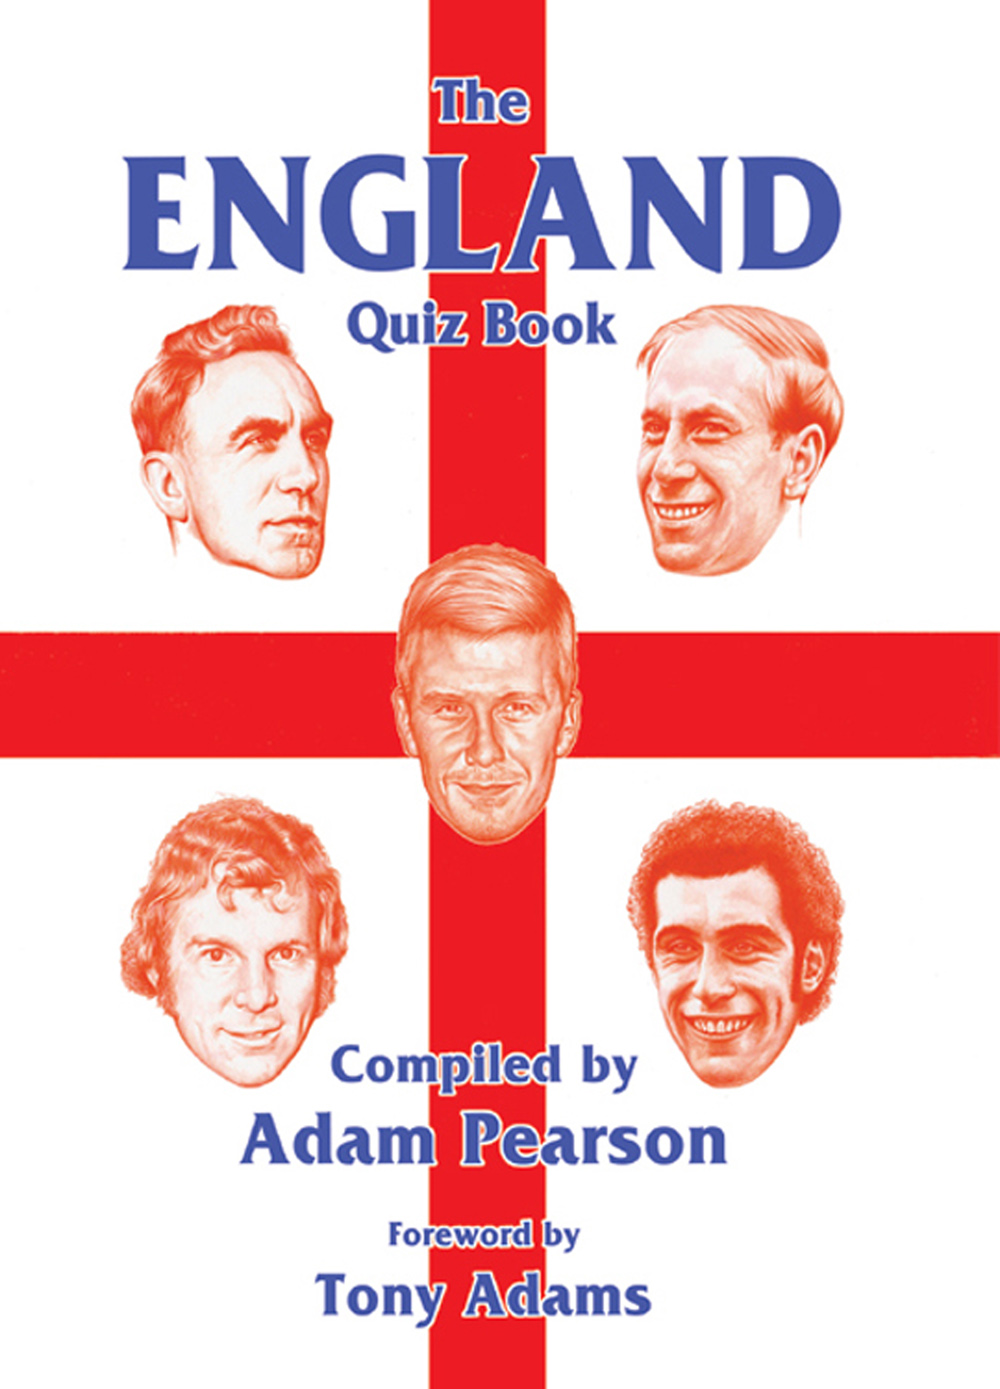 The England Quiz Book